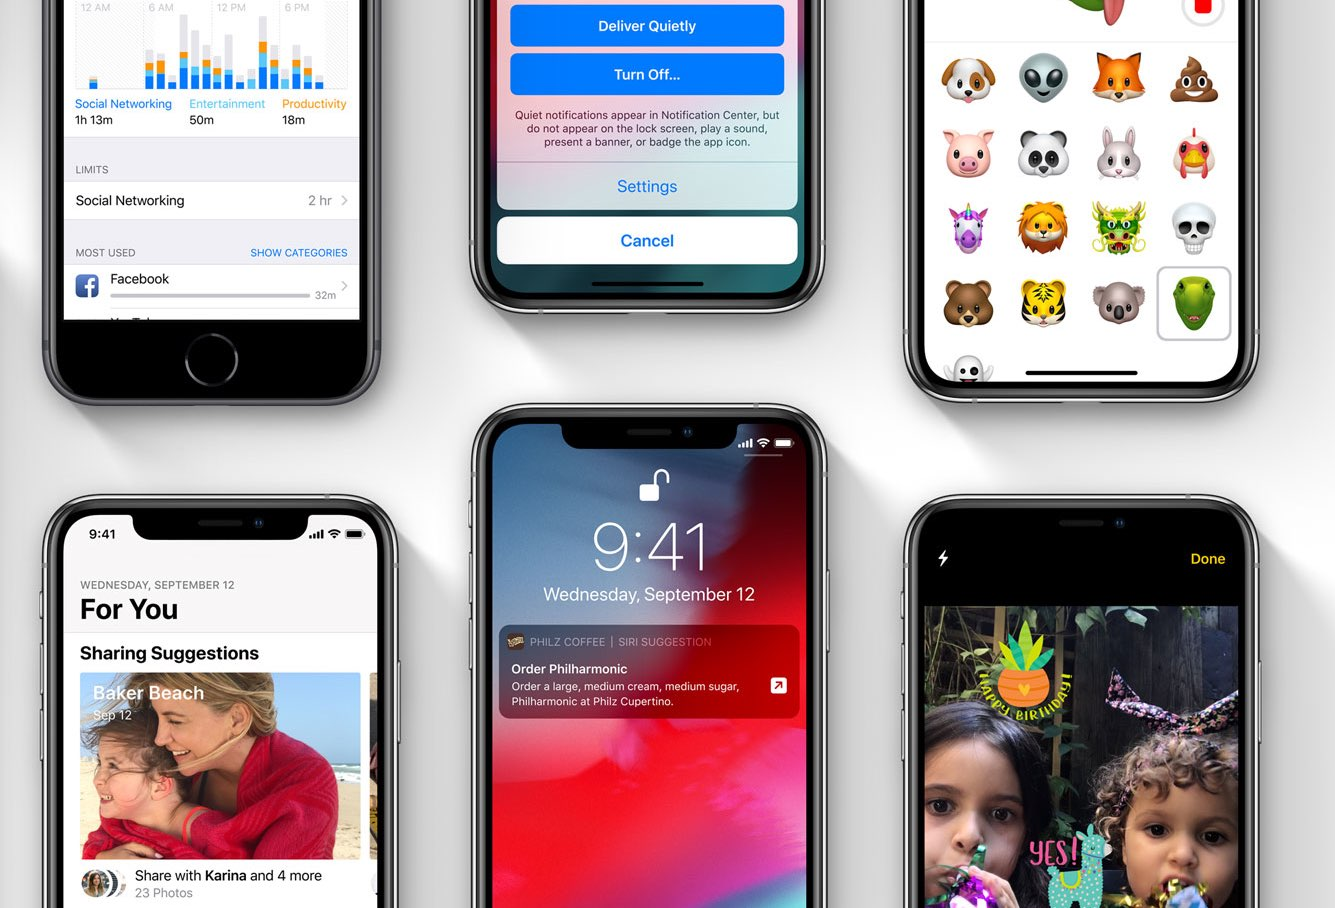 All the new features in iOS 12 and how to use them on your iPhone